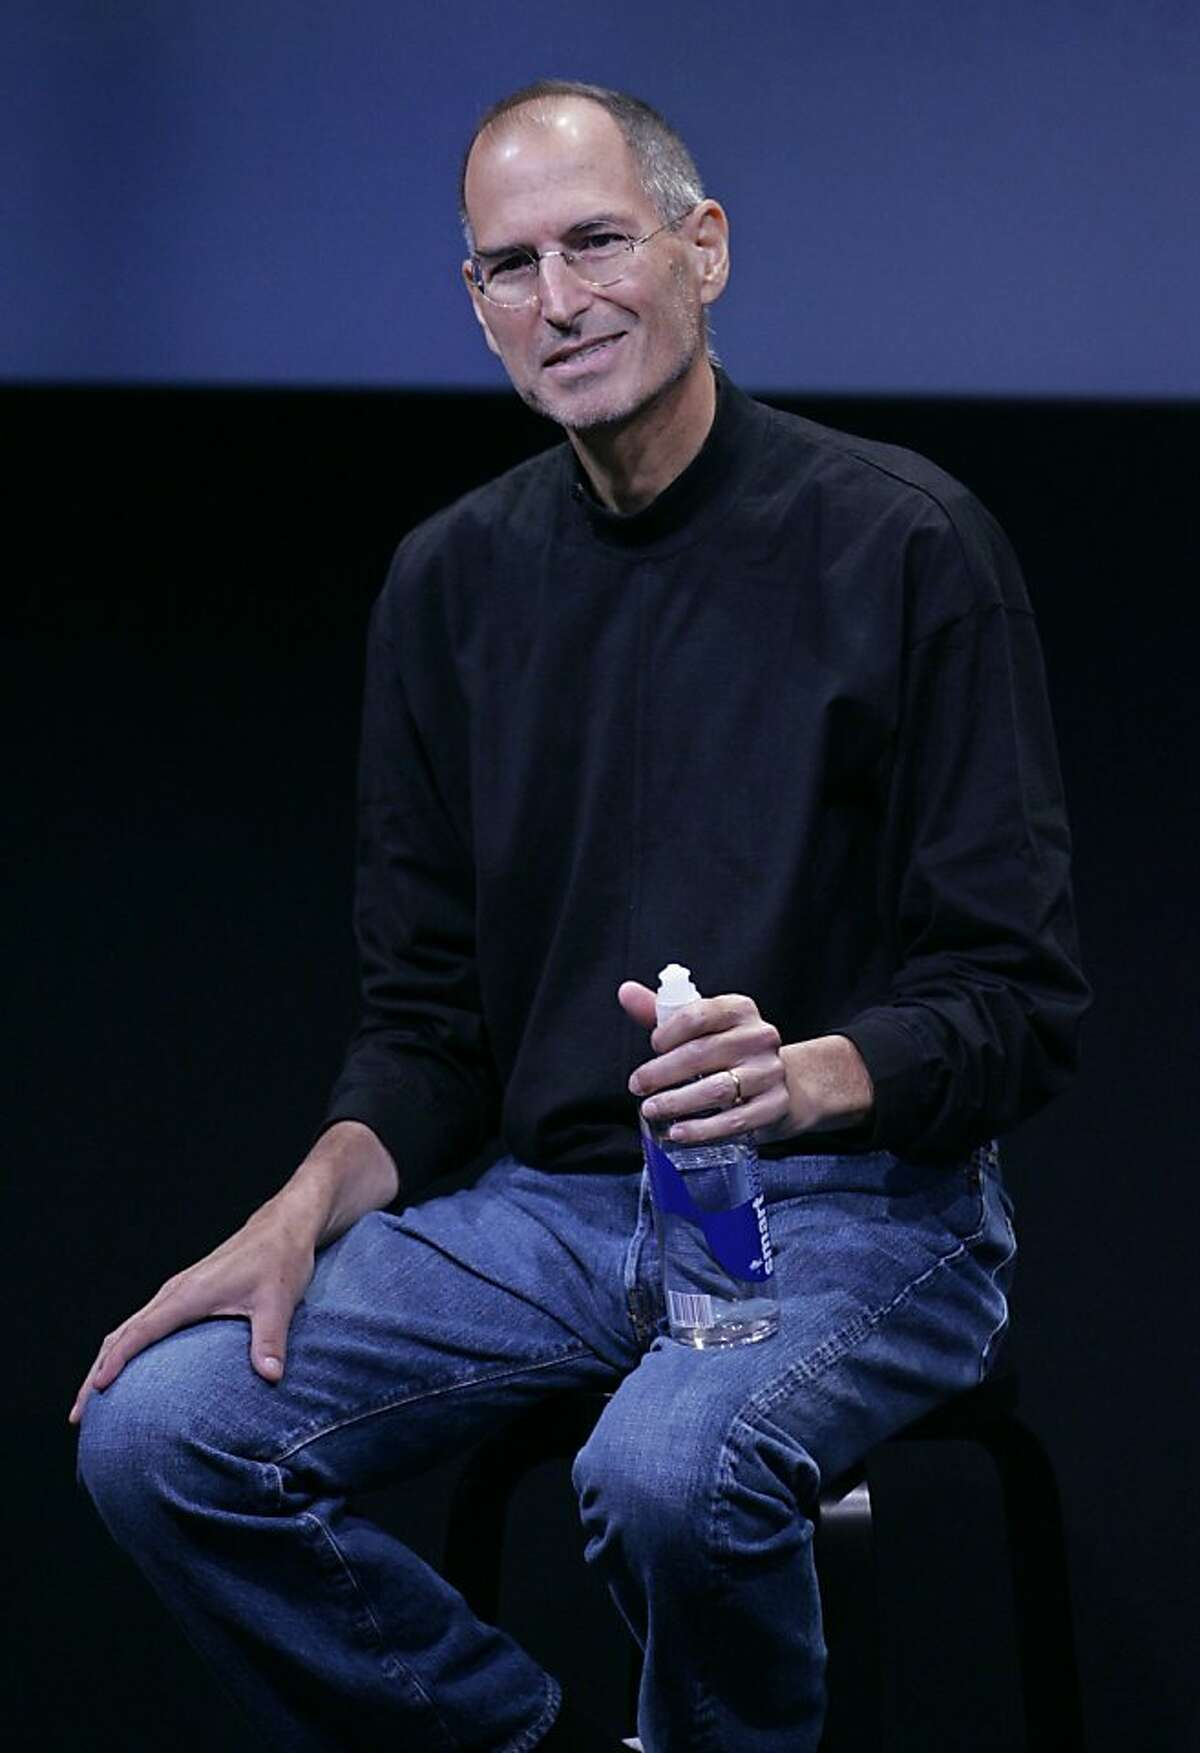 In this Oct. 14, 2008 file photo, Apple Inc. CEO Steve Jobs smiles during a product announcement at Apple headquarters in Cupertino, Calif. A published report says Jobs, who has been on medical leave for undisclosed reasons since January, received a liver transplant two months ago, Saturday, June 20, 2009.